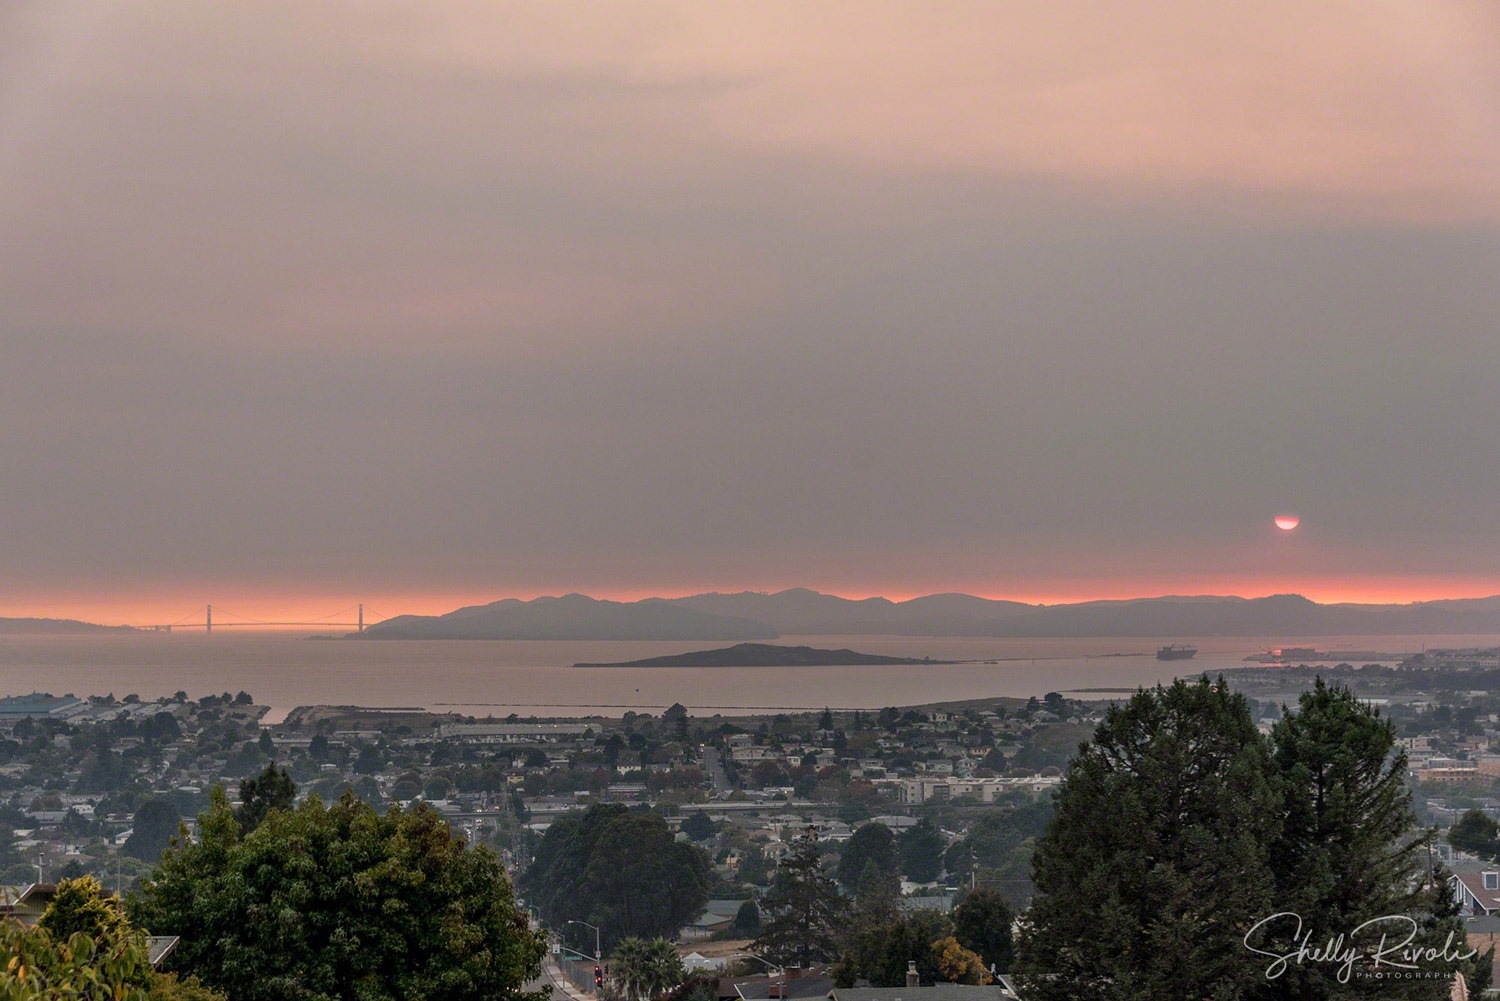 Smokey view looking west over San Francisco Bay on October 12, 2017.